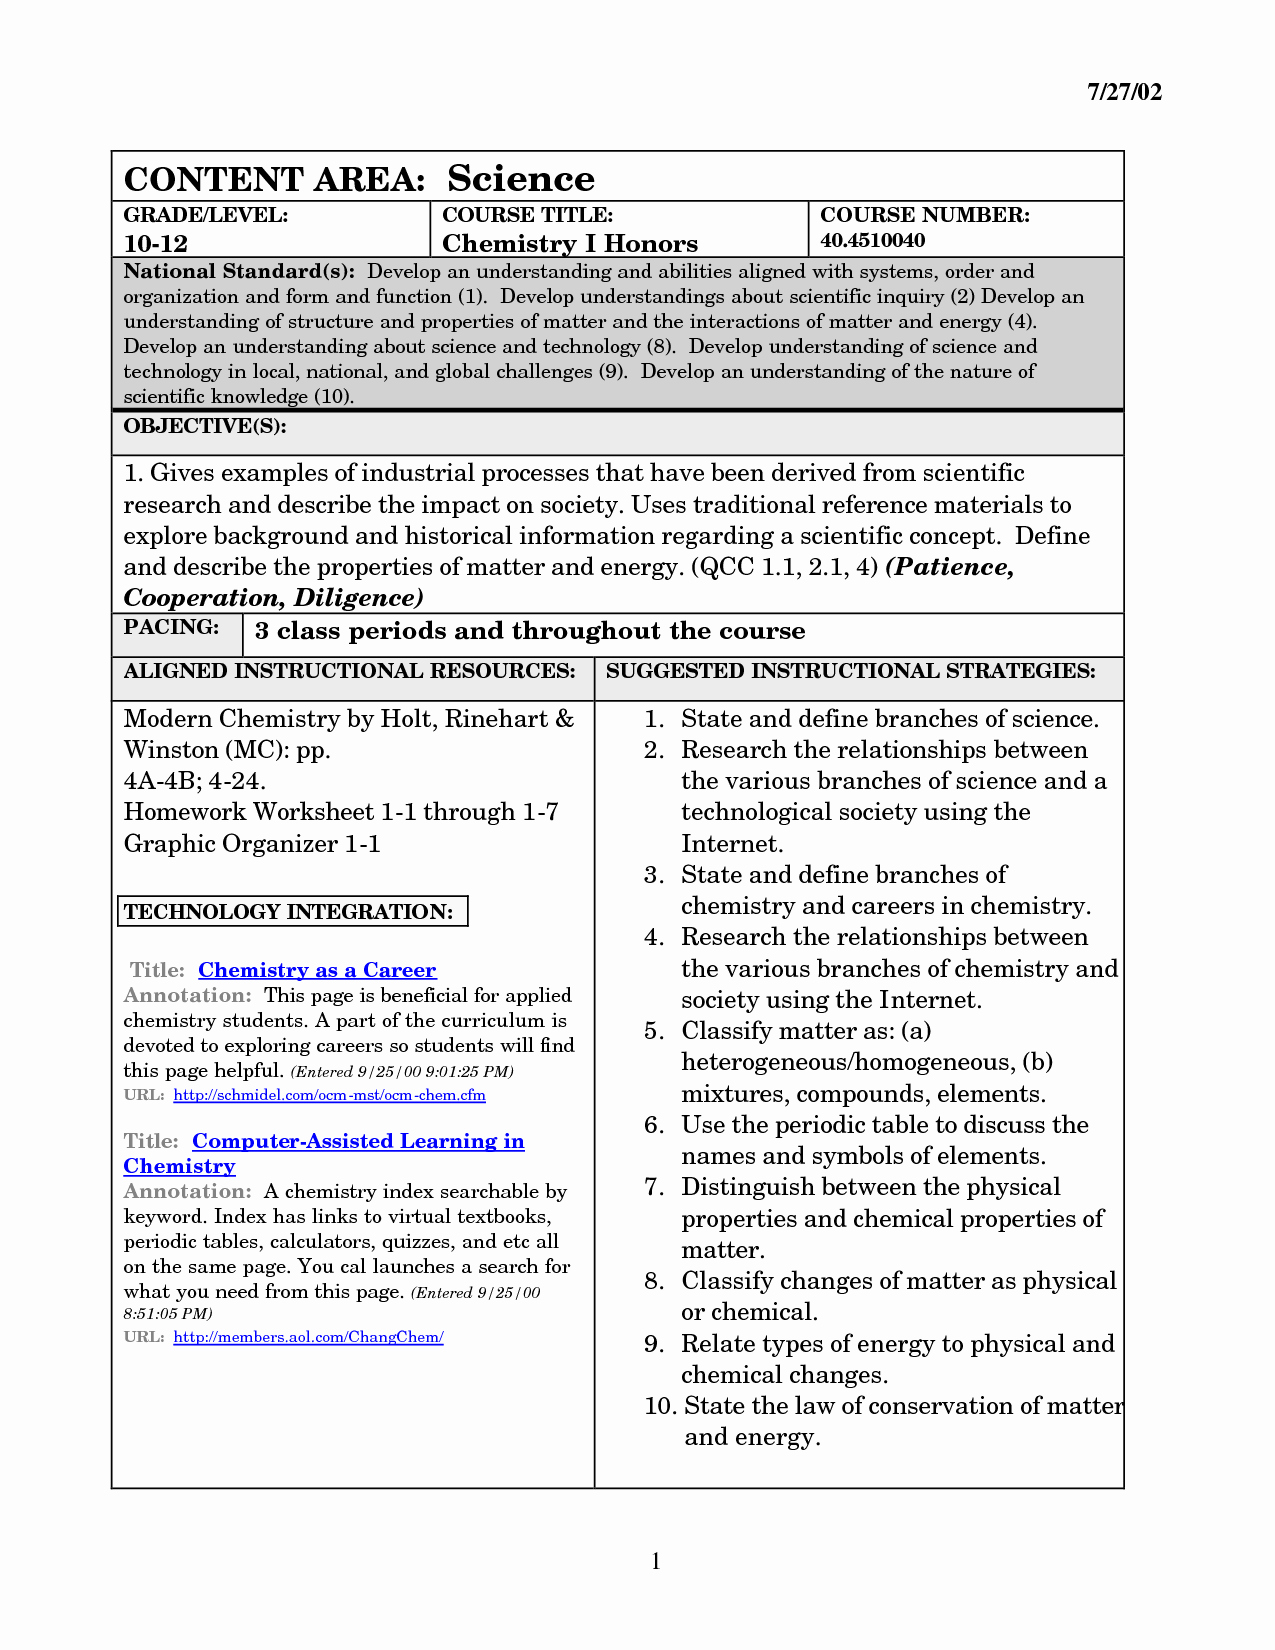 Classification Of Matter Worksheet Answers Lovely 15 Best Of Classifying Chemical Reactions Worksheet